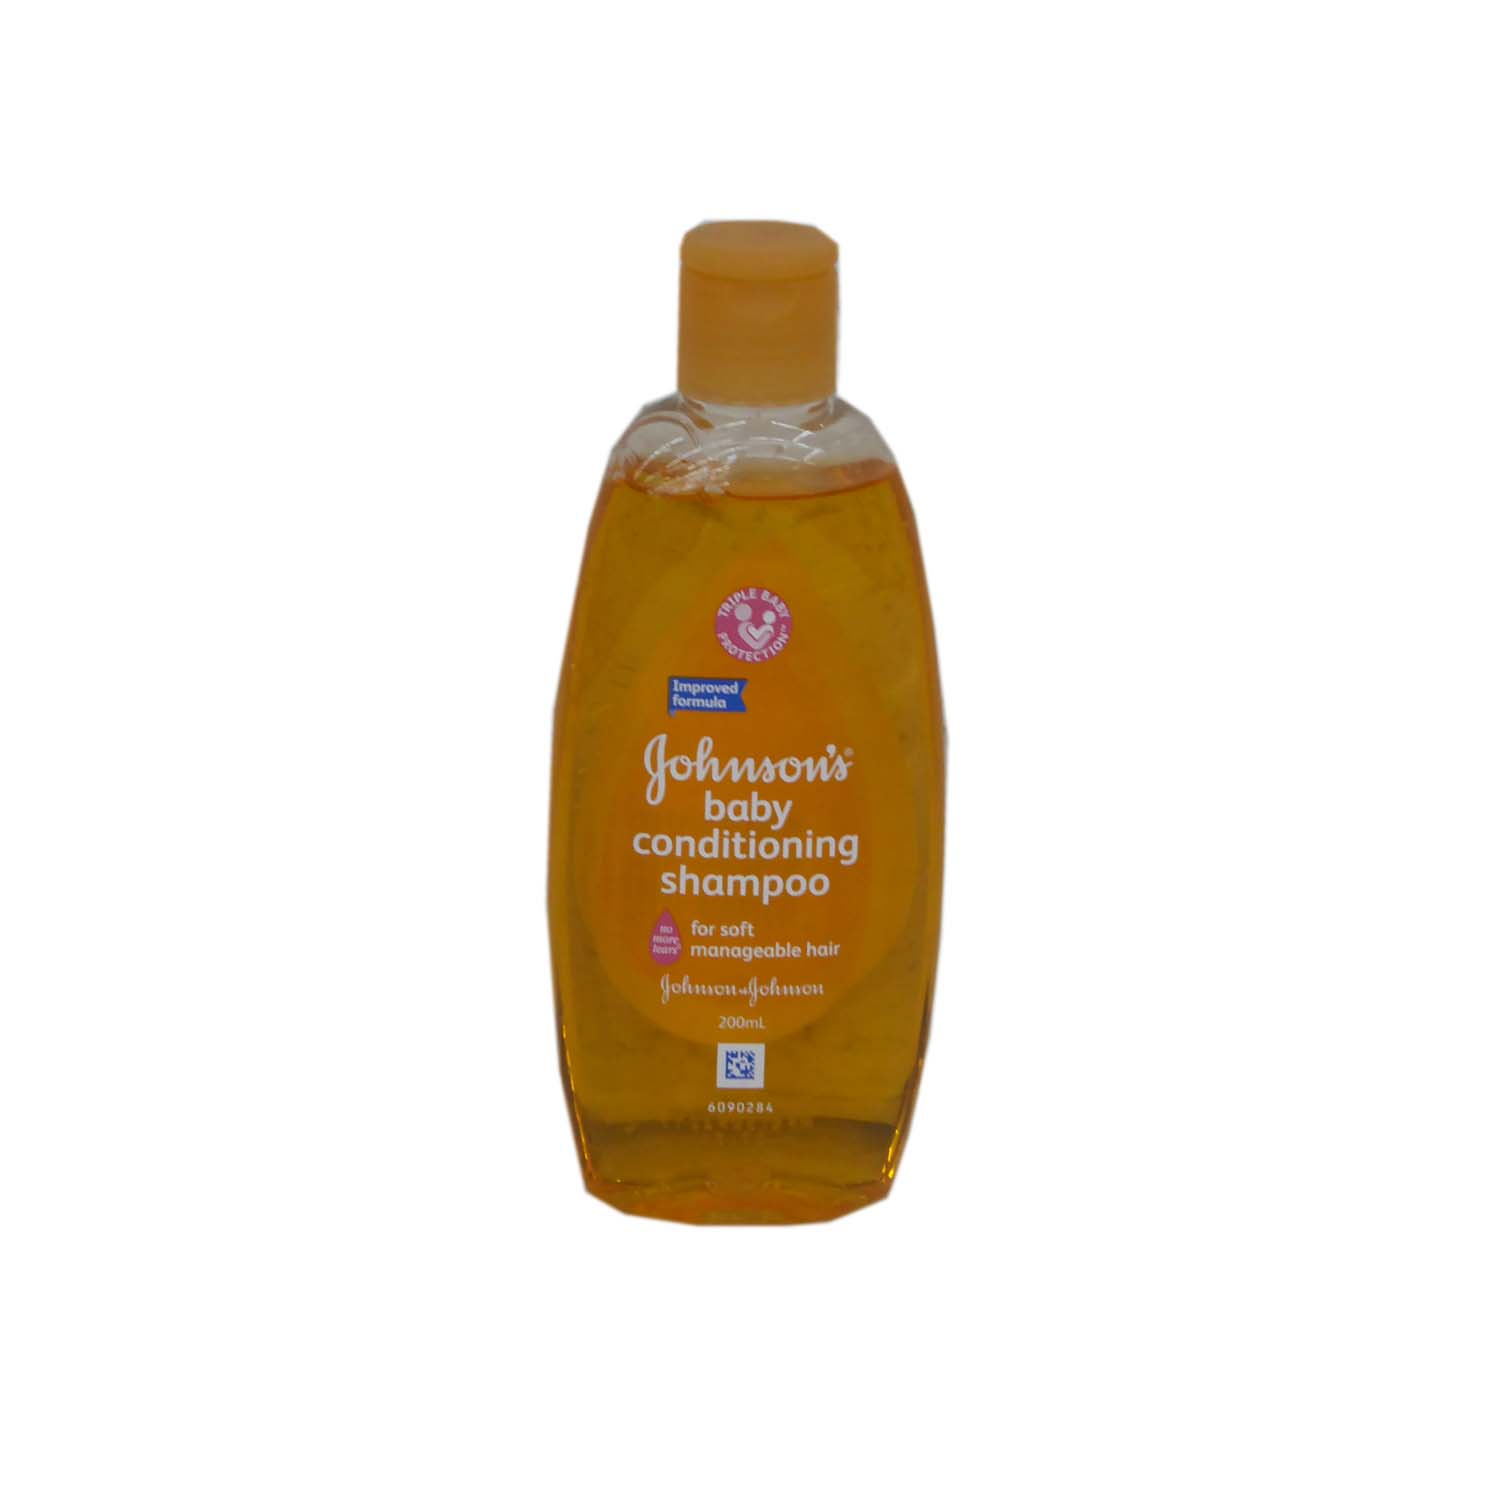 J & J Baby 2 in 1 Conditioning